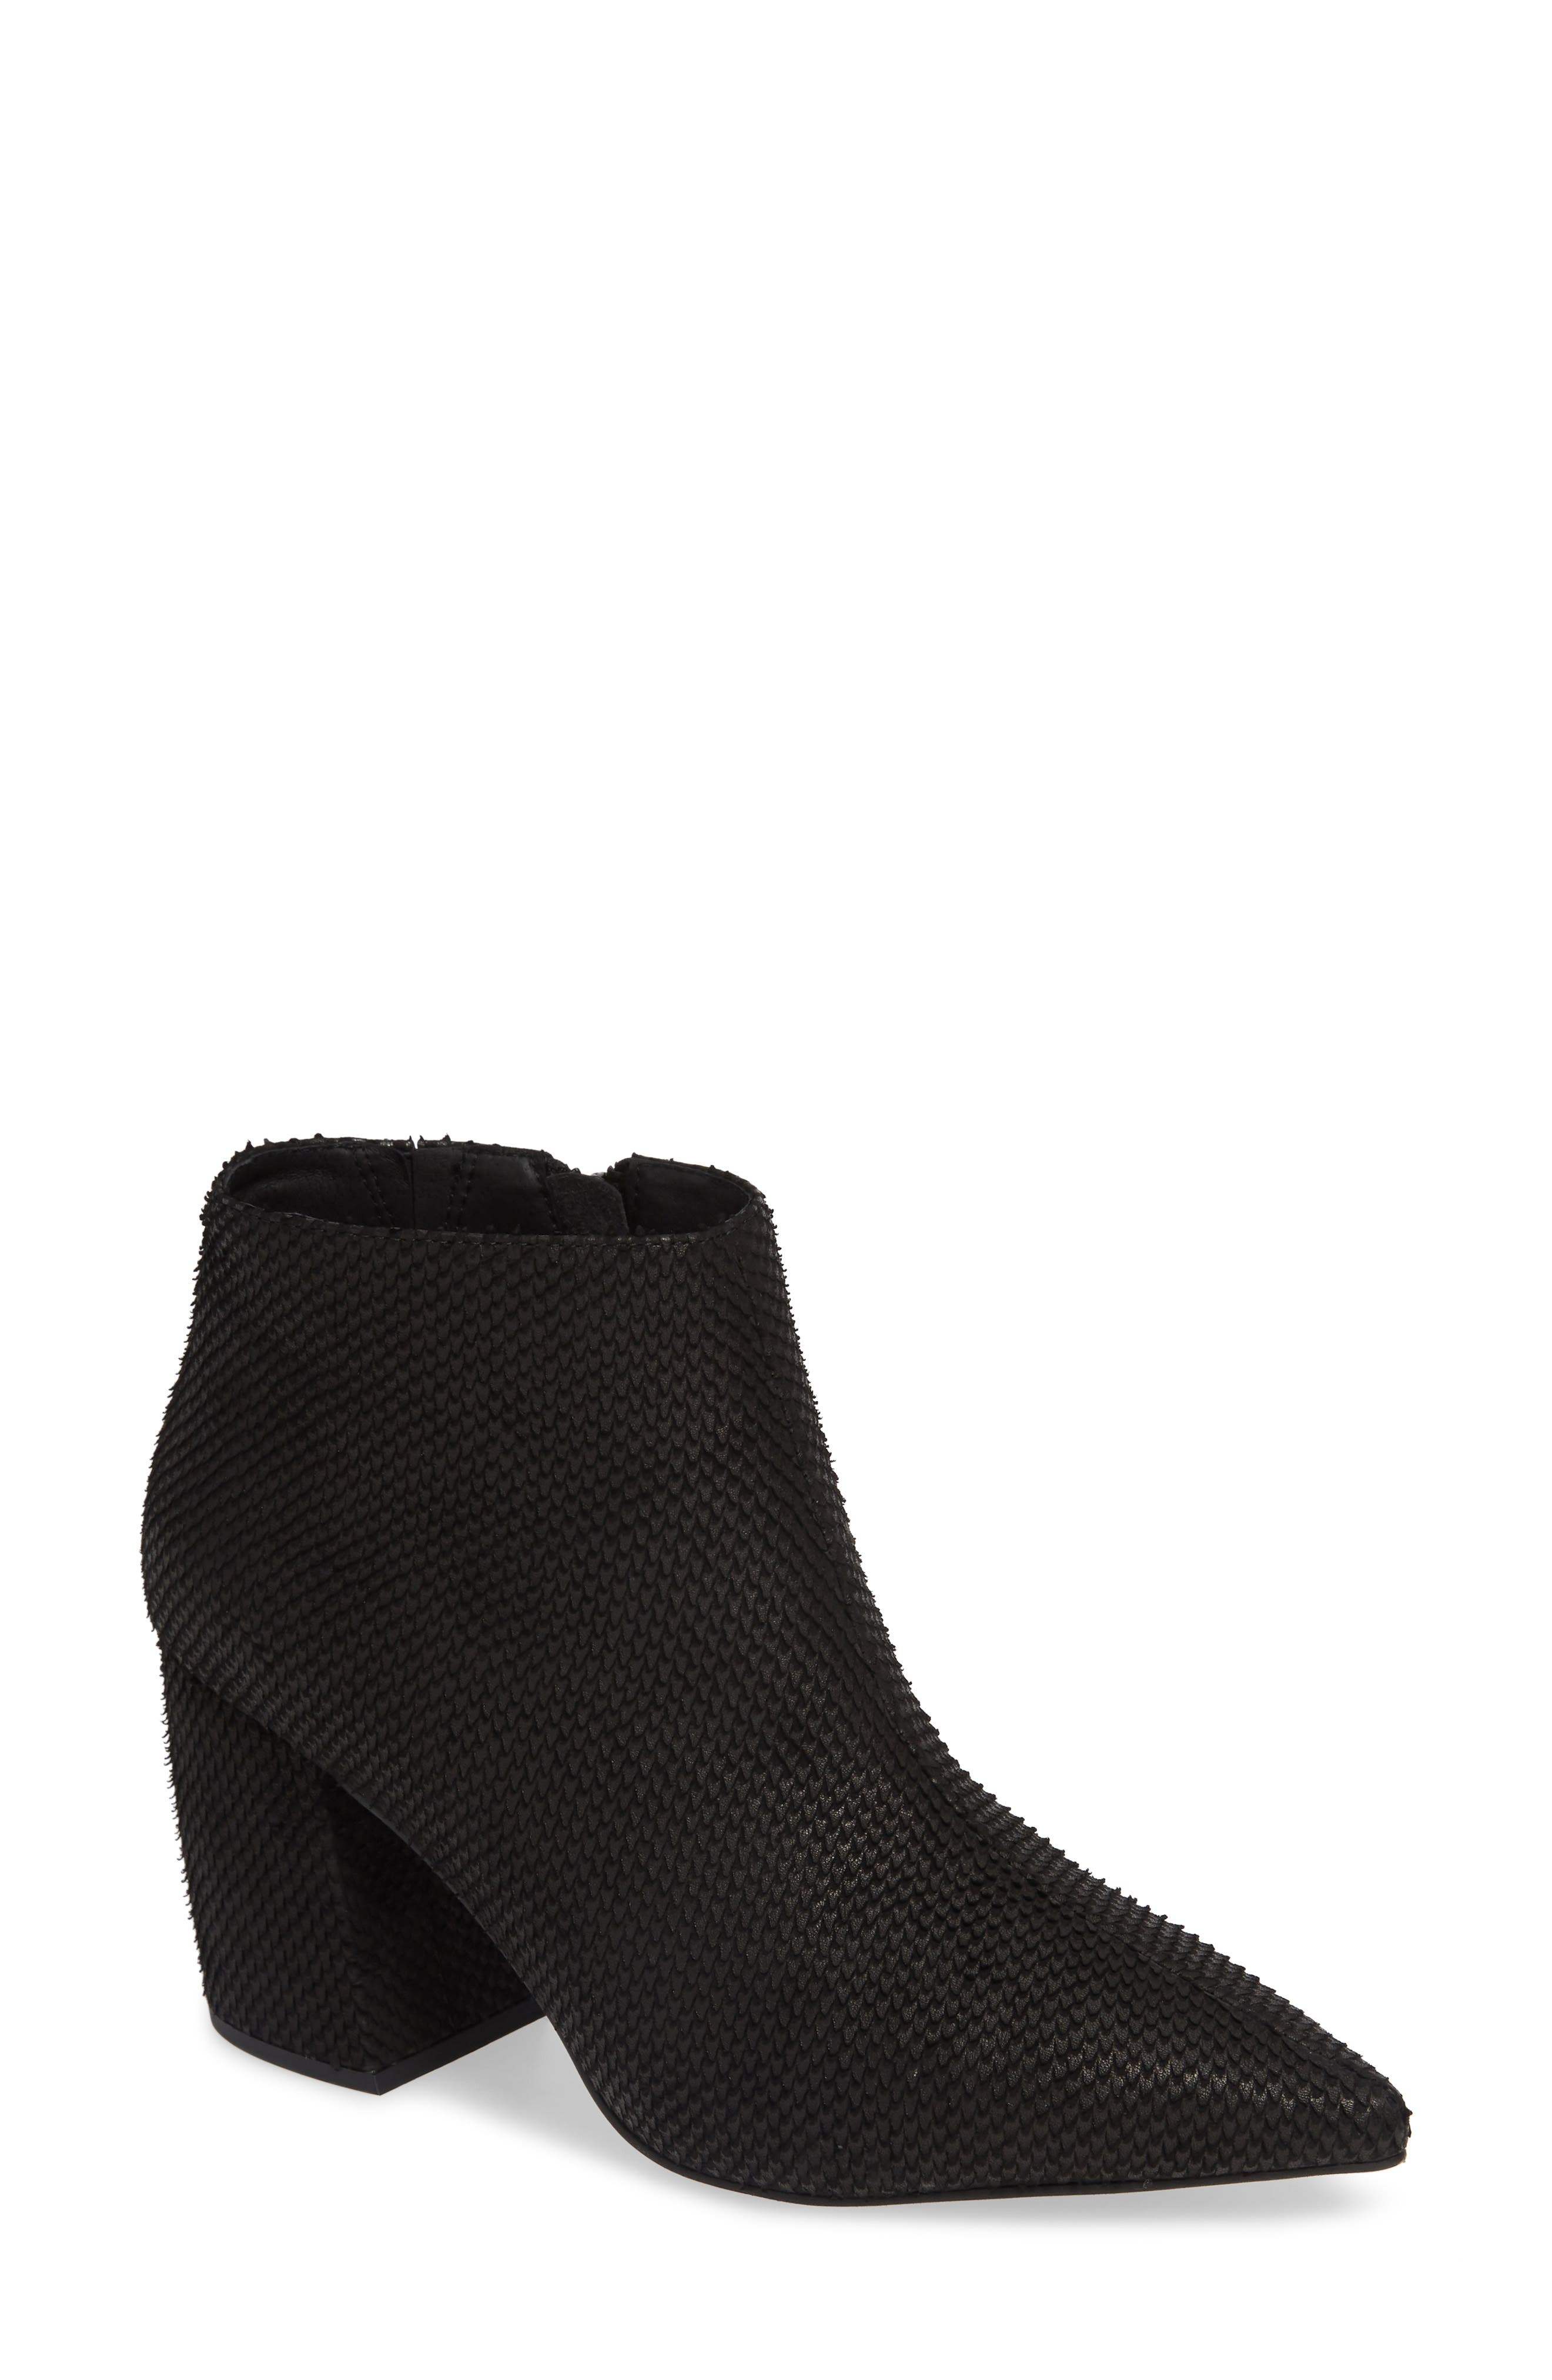 Total Ankle Bootie,                             Main thumbnail 1, color,                             BLACK SCALES